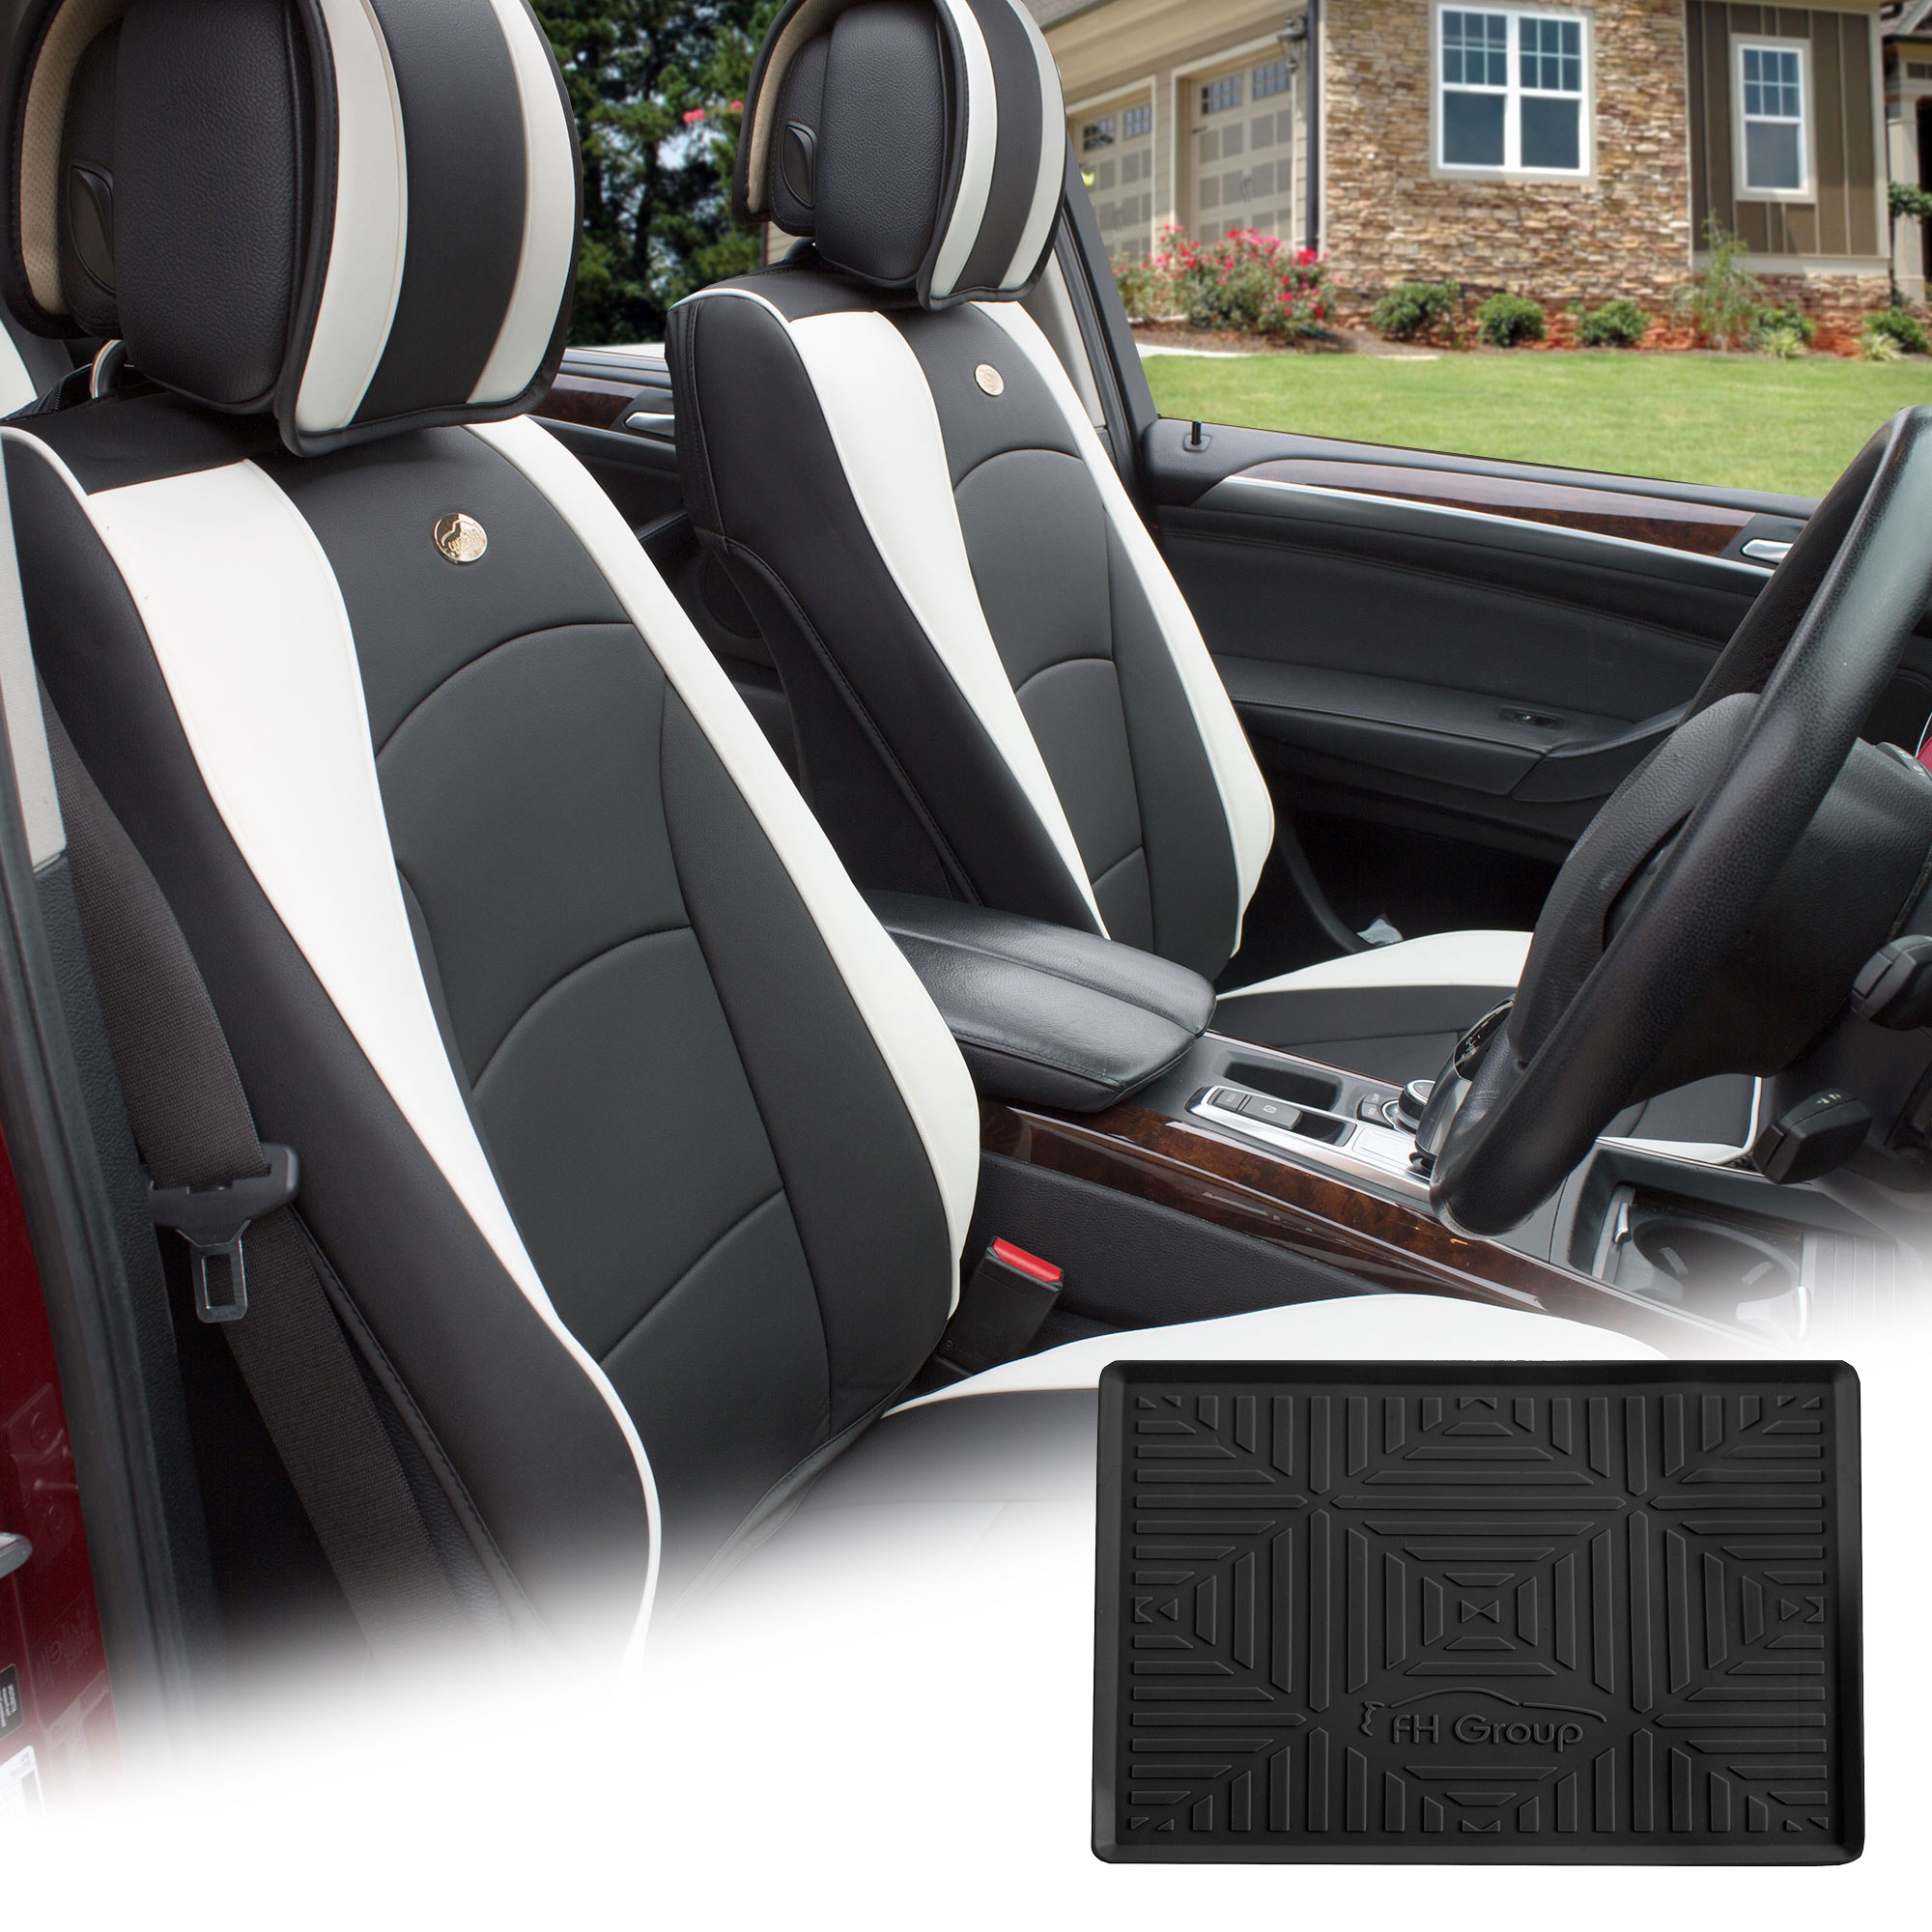 FH Group Black White PU Leather Front Bucket Seat Cushion Covers for Auto Car SUV Truck Van with Black Dash Mat Combo